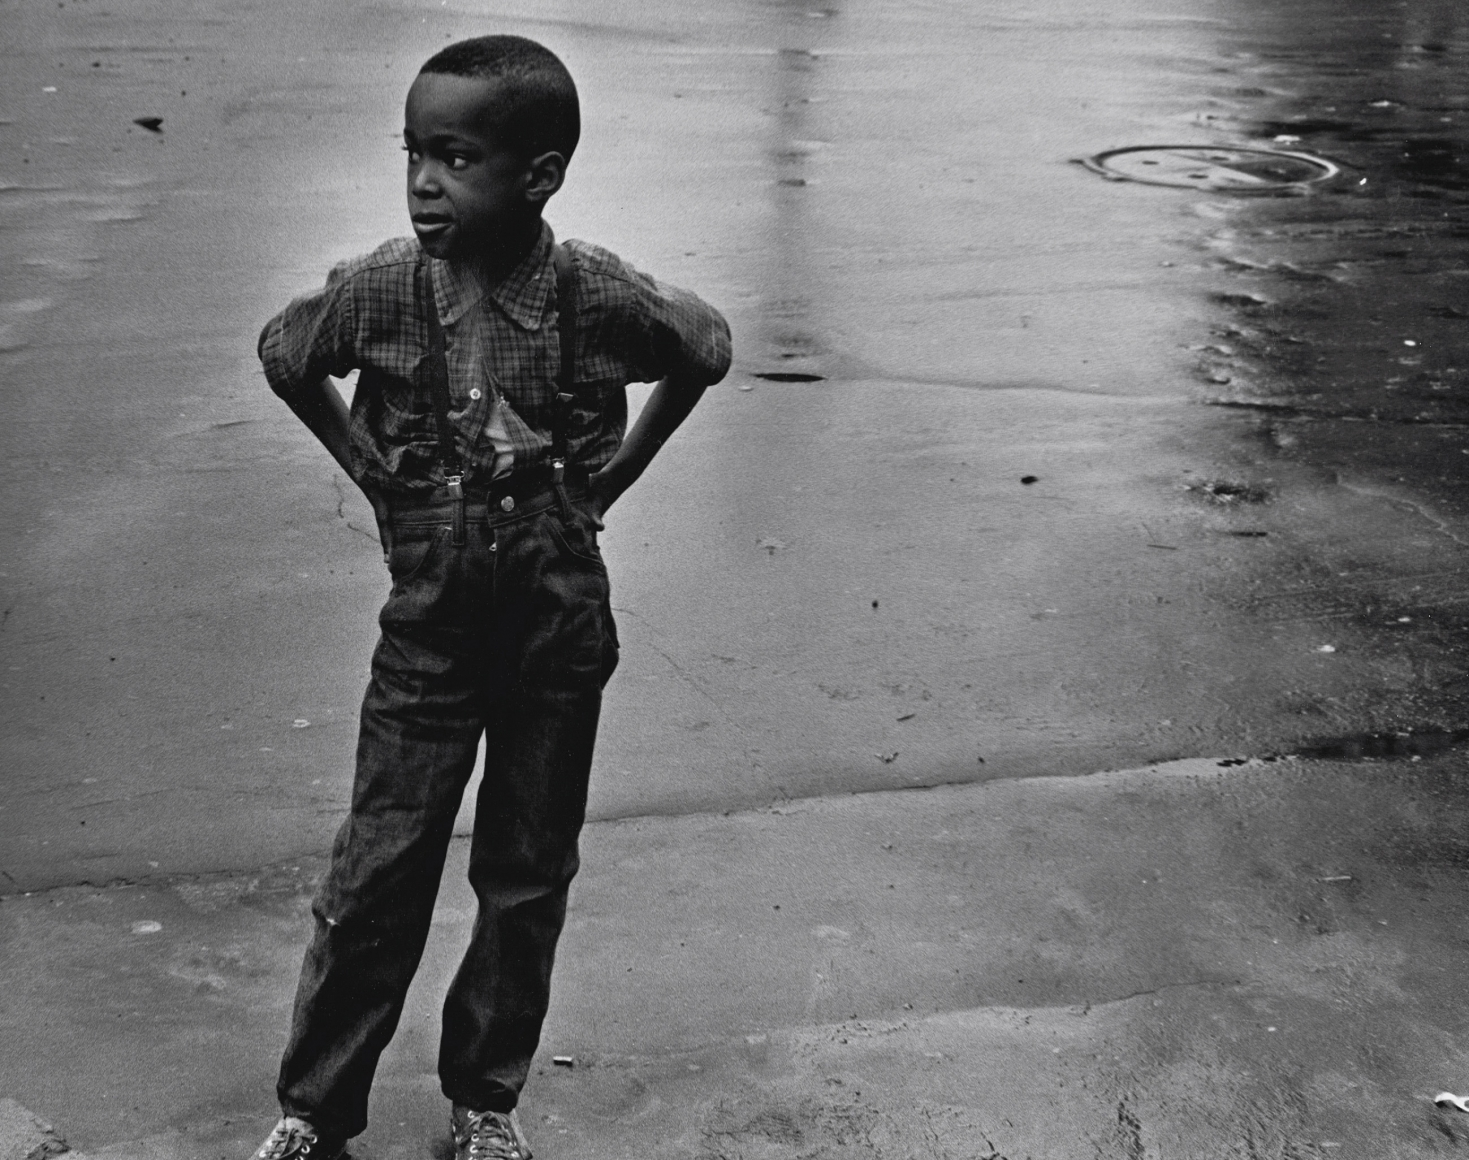 29. Beuford Smith, Boy in Street, Brooklyn, 1969. A young boy in suspenders stand with hands on hips on wet pavement, looking to the left of the frame.